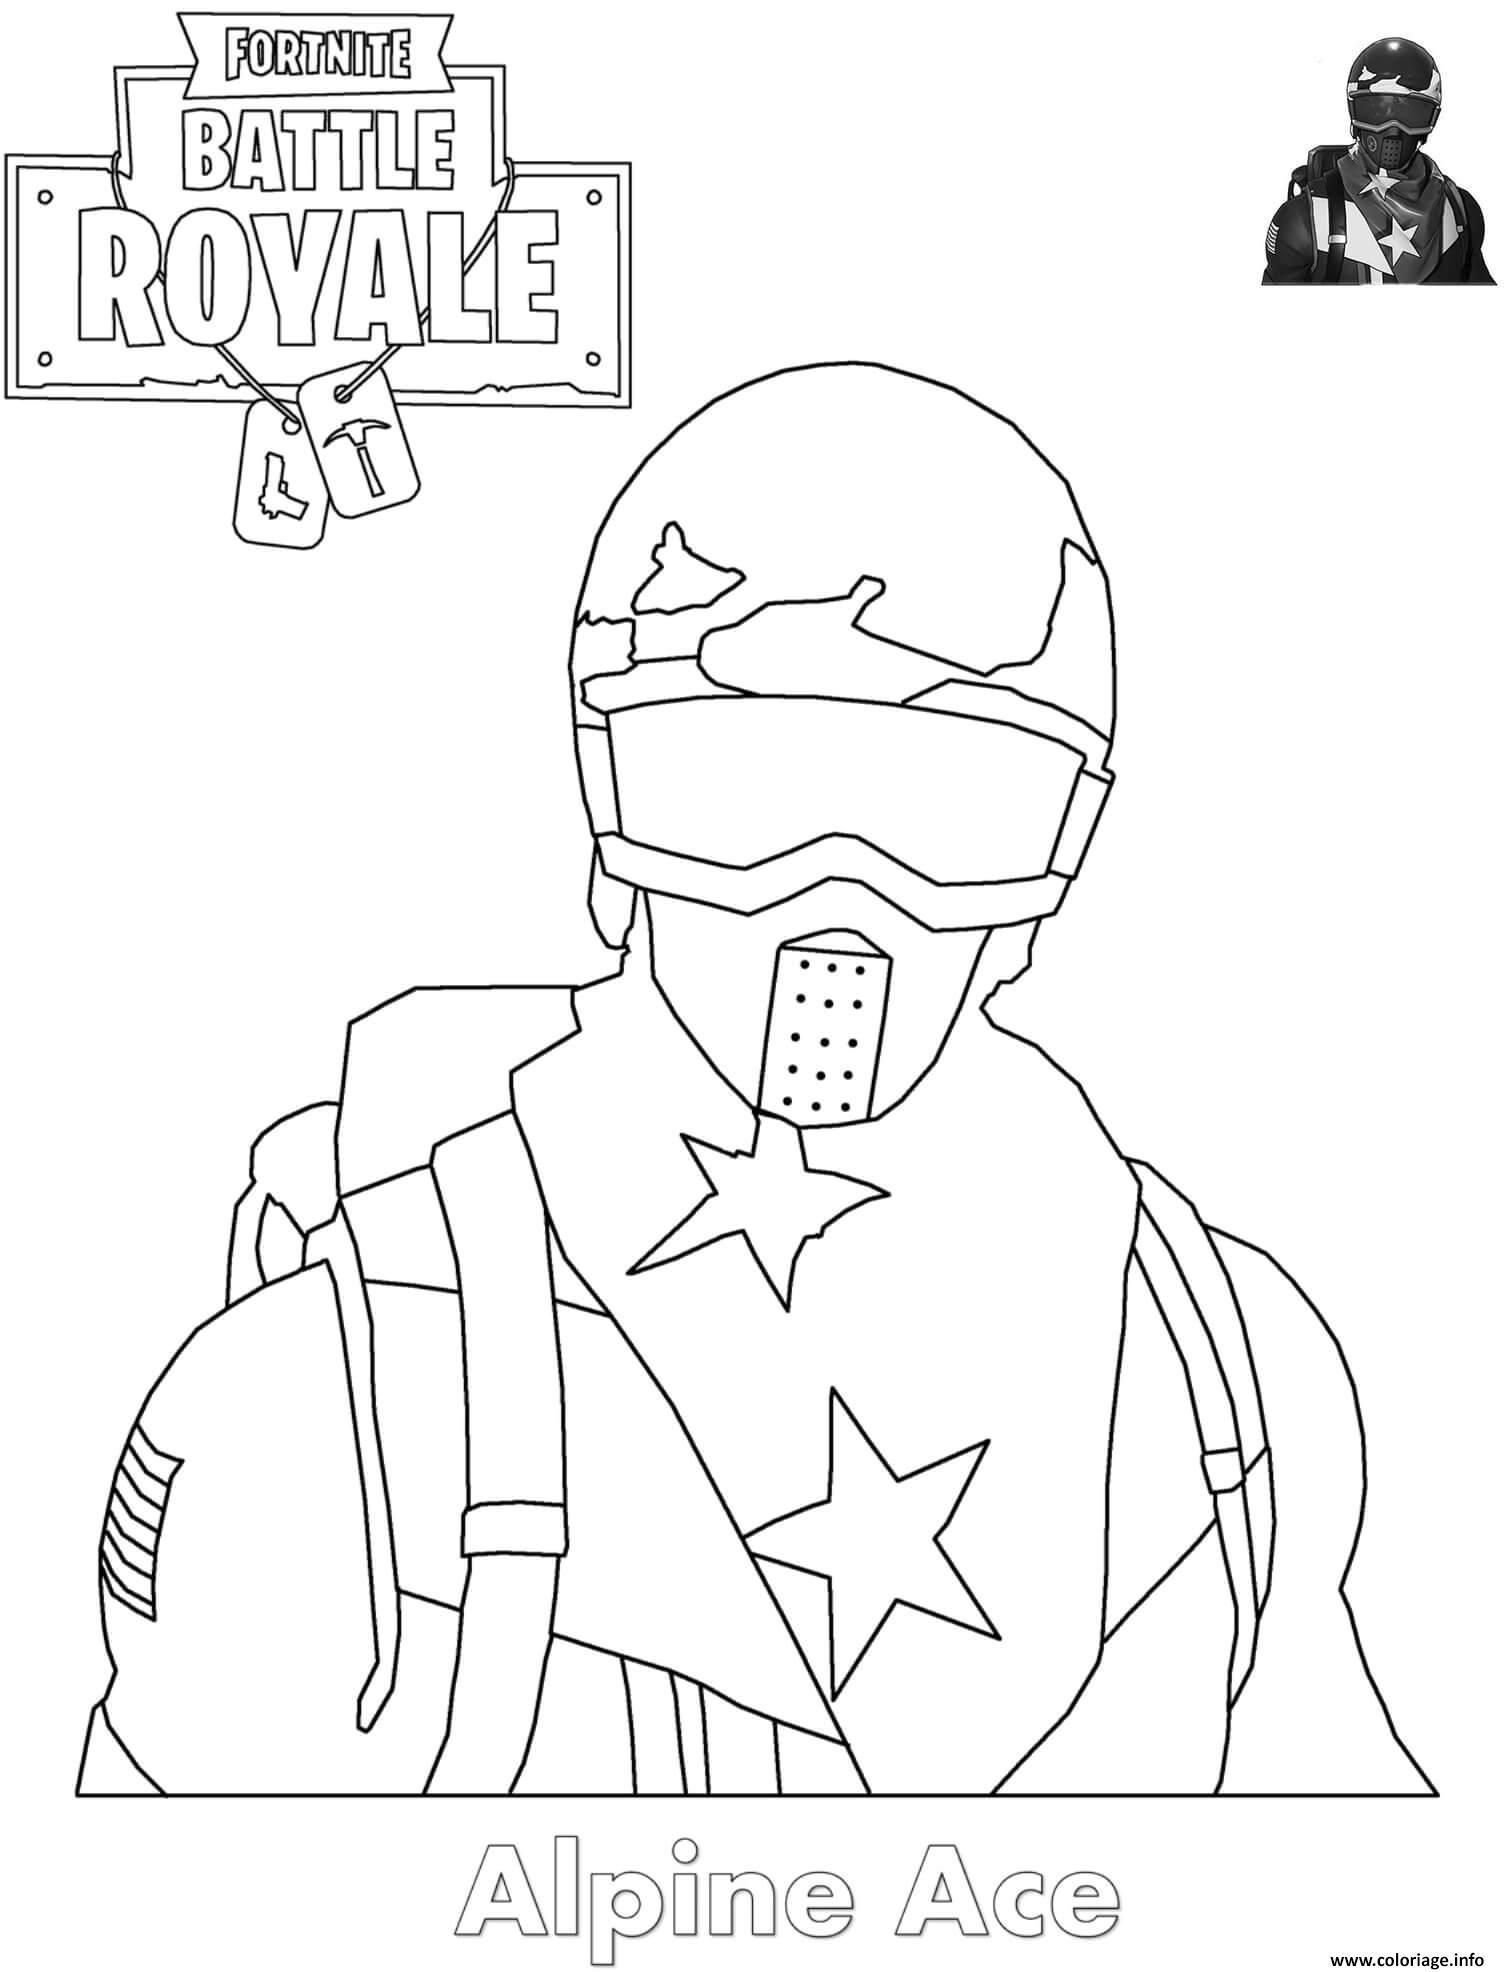 Fortnite Llama Coloring Page Coloring Pages Hd Fortnite ...